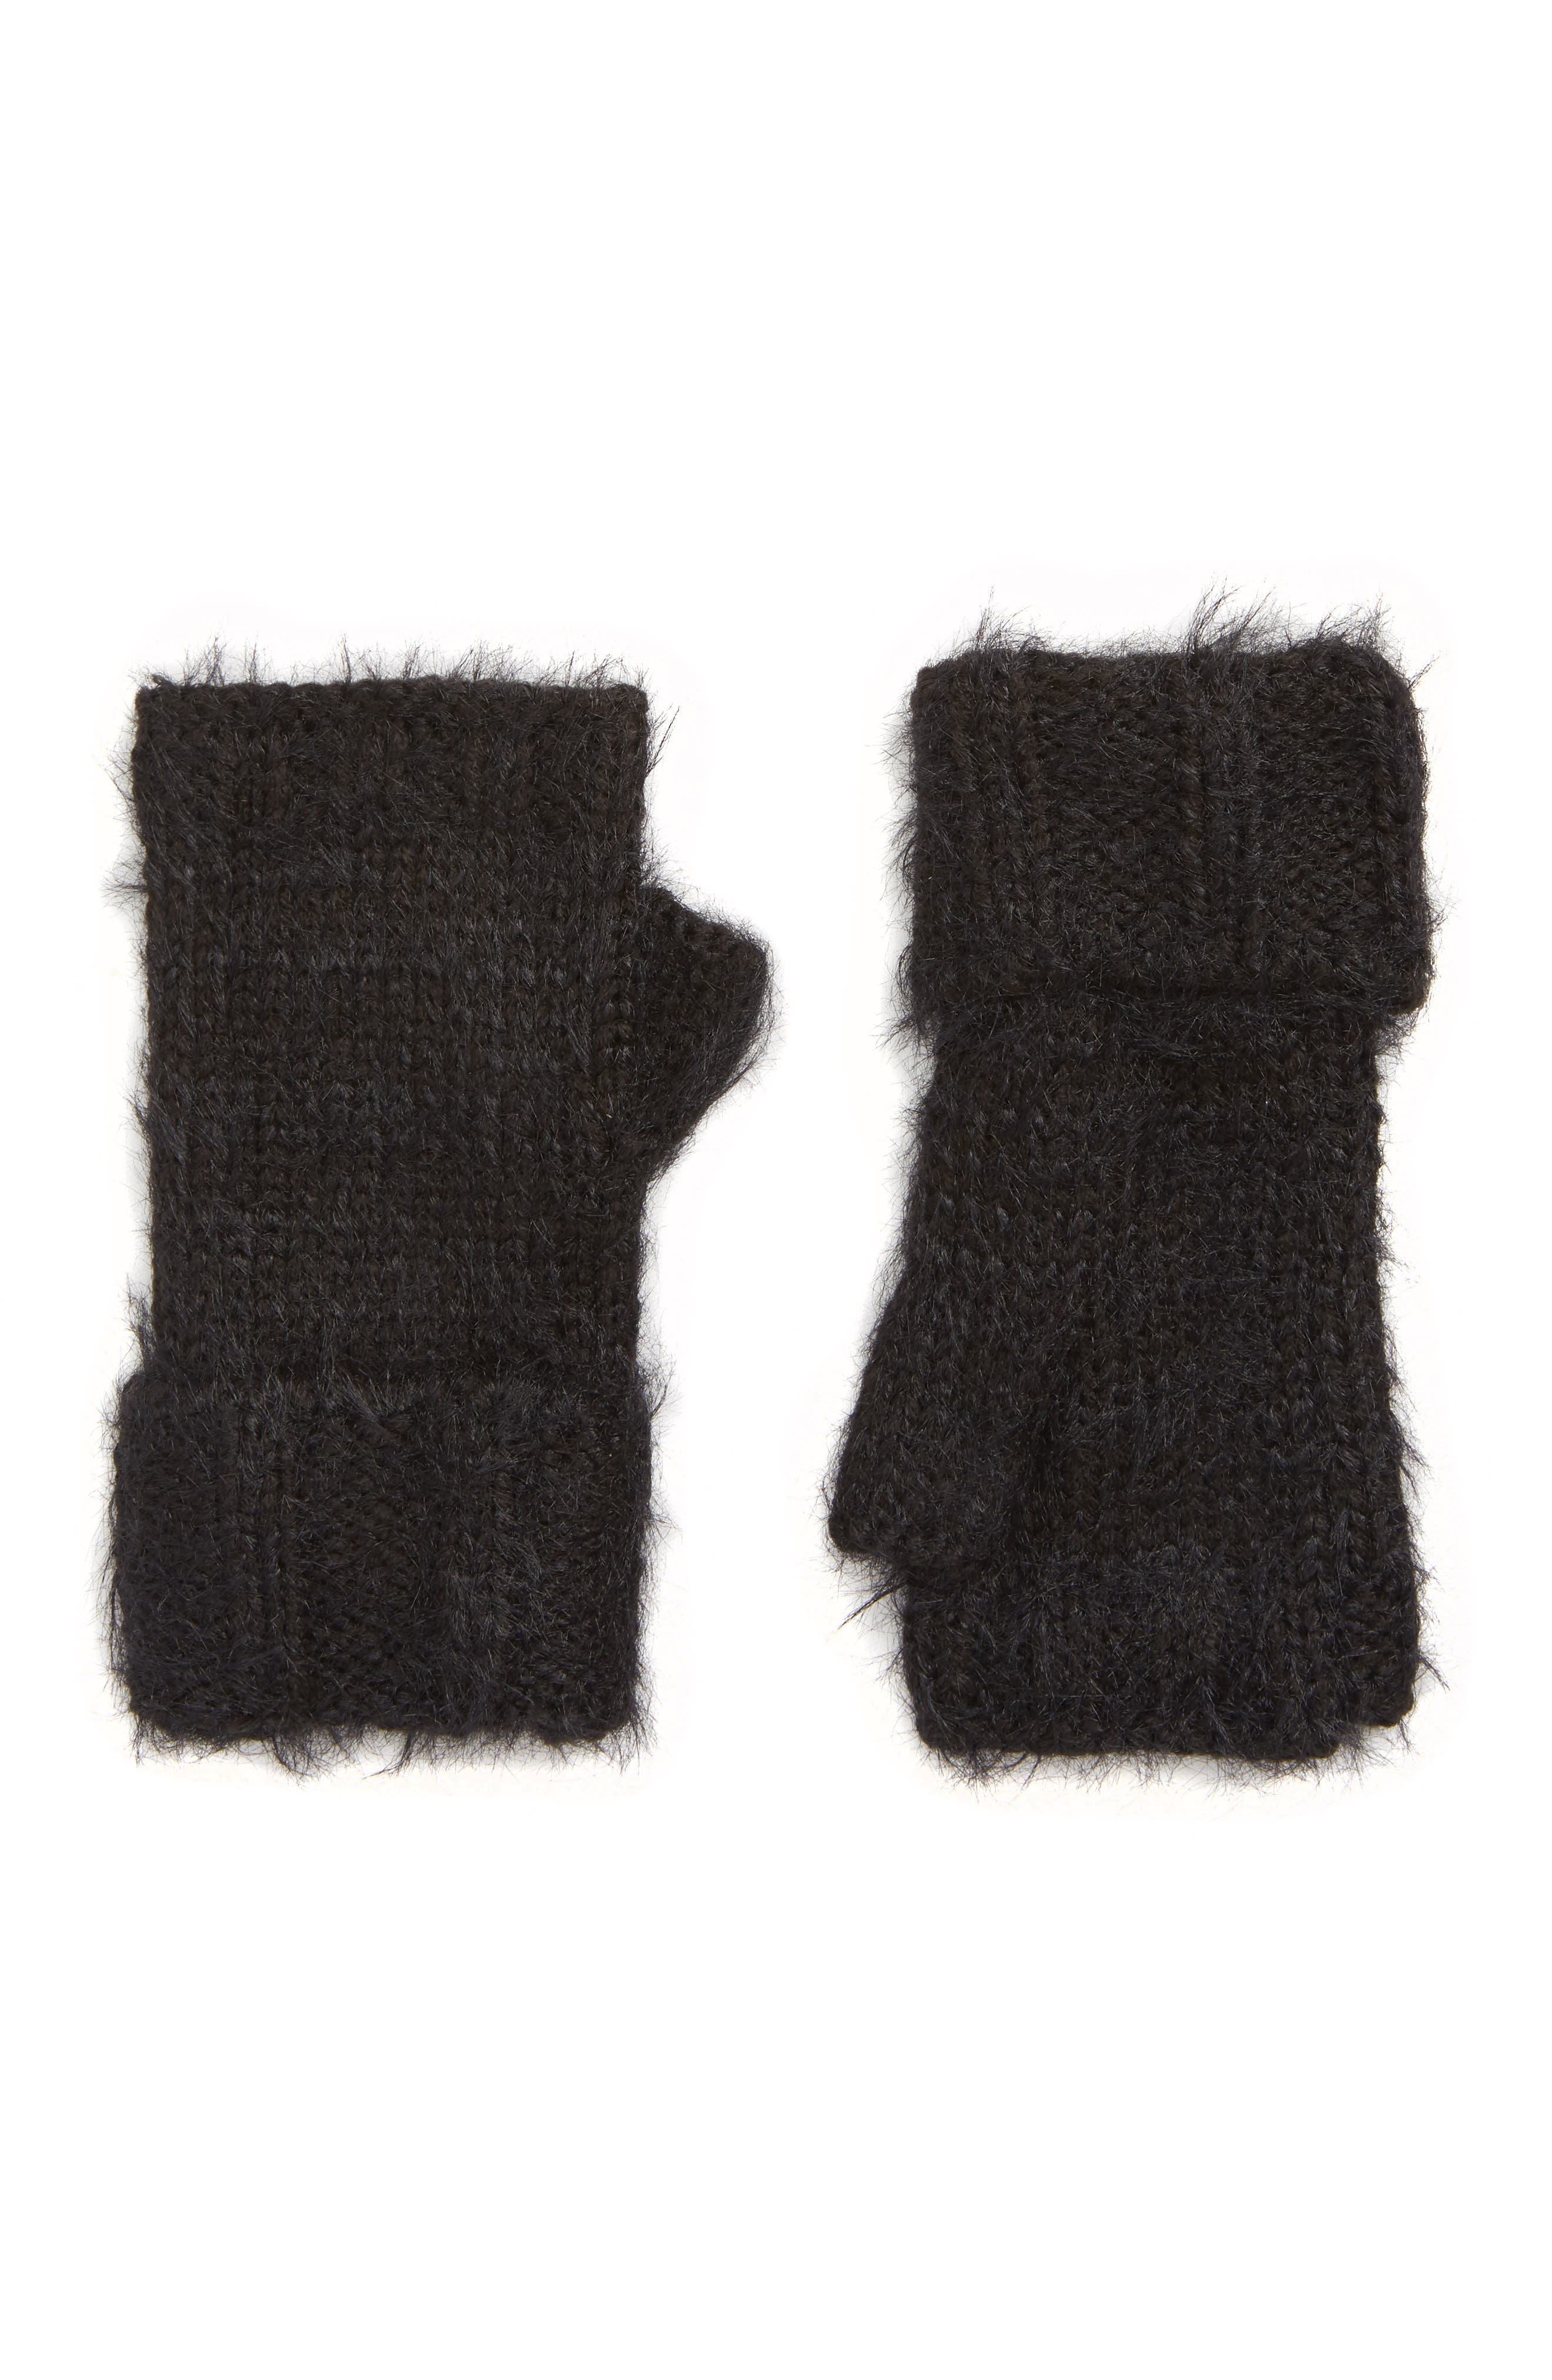 Eyelash Fingerless Gloves,                             Main thumbnail 1, color,                             BLACK